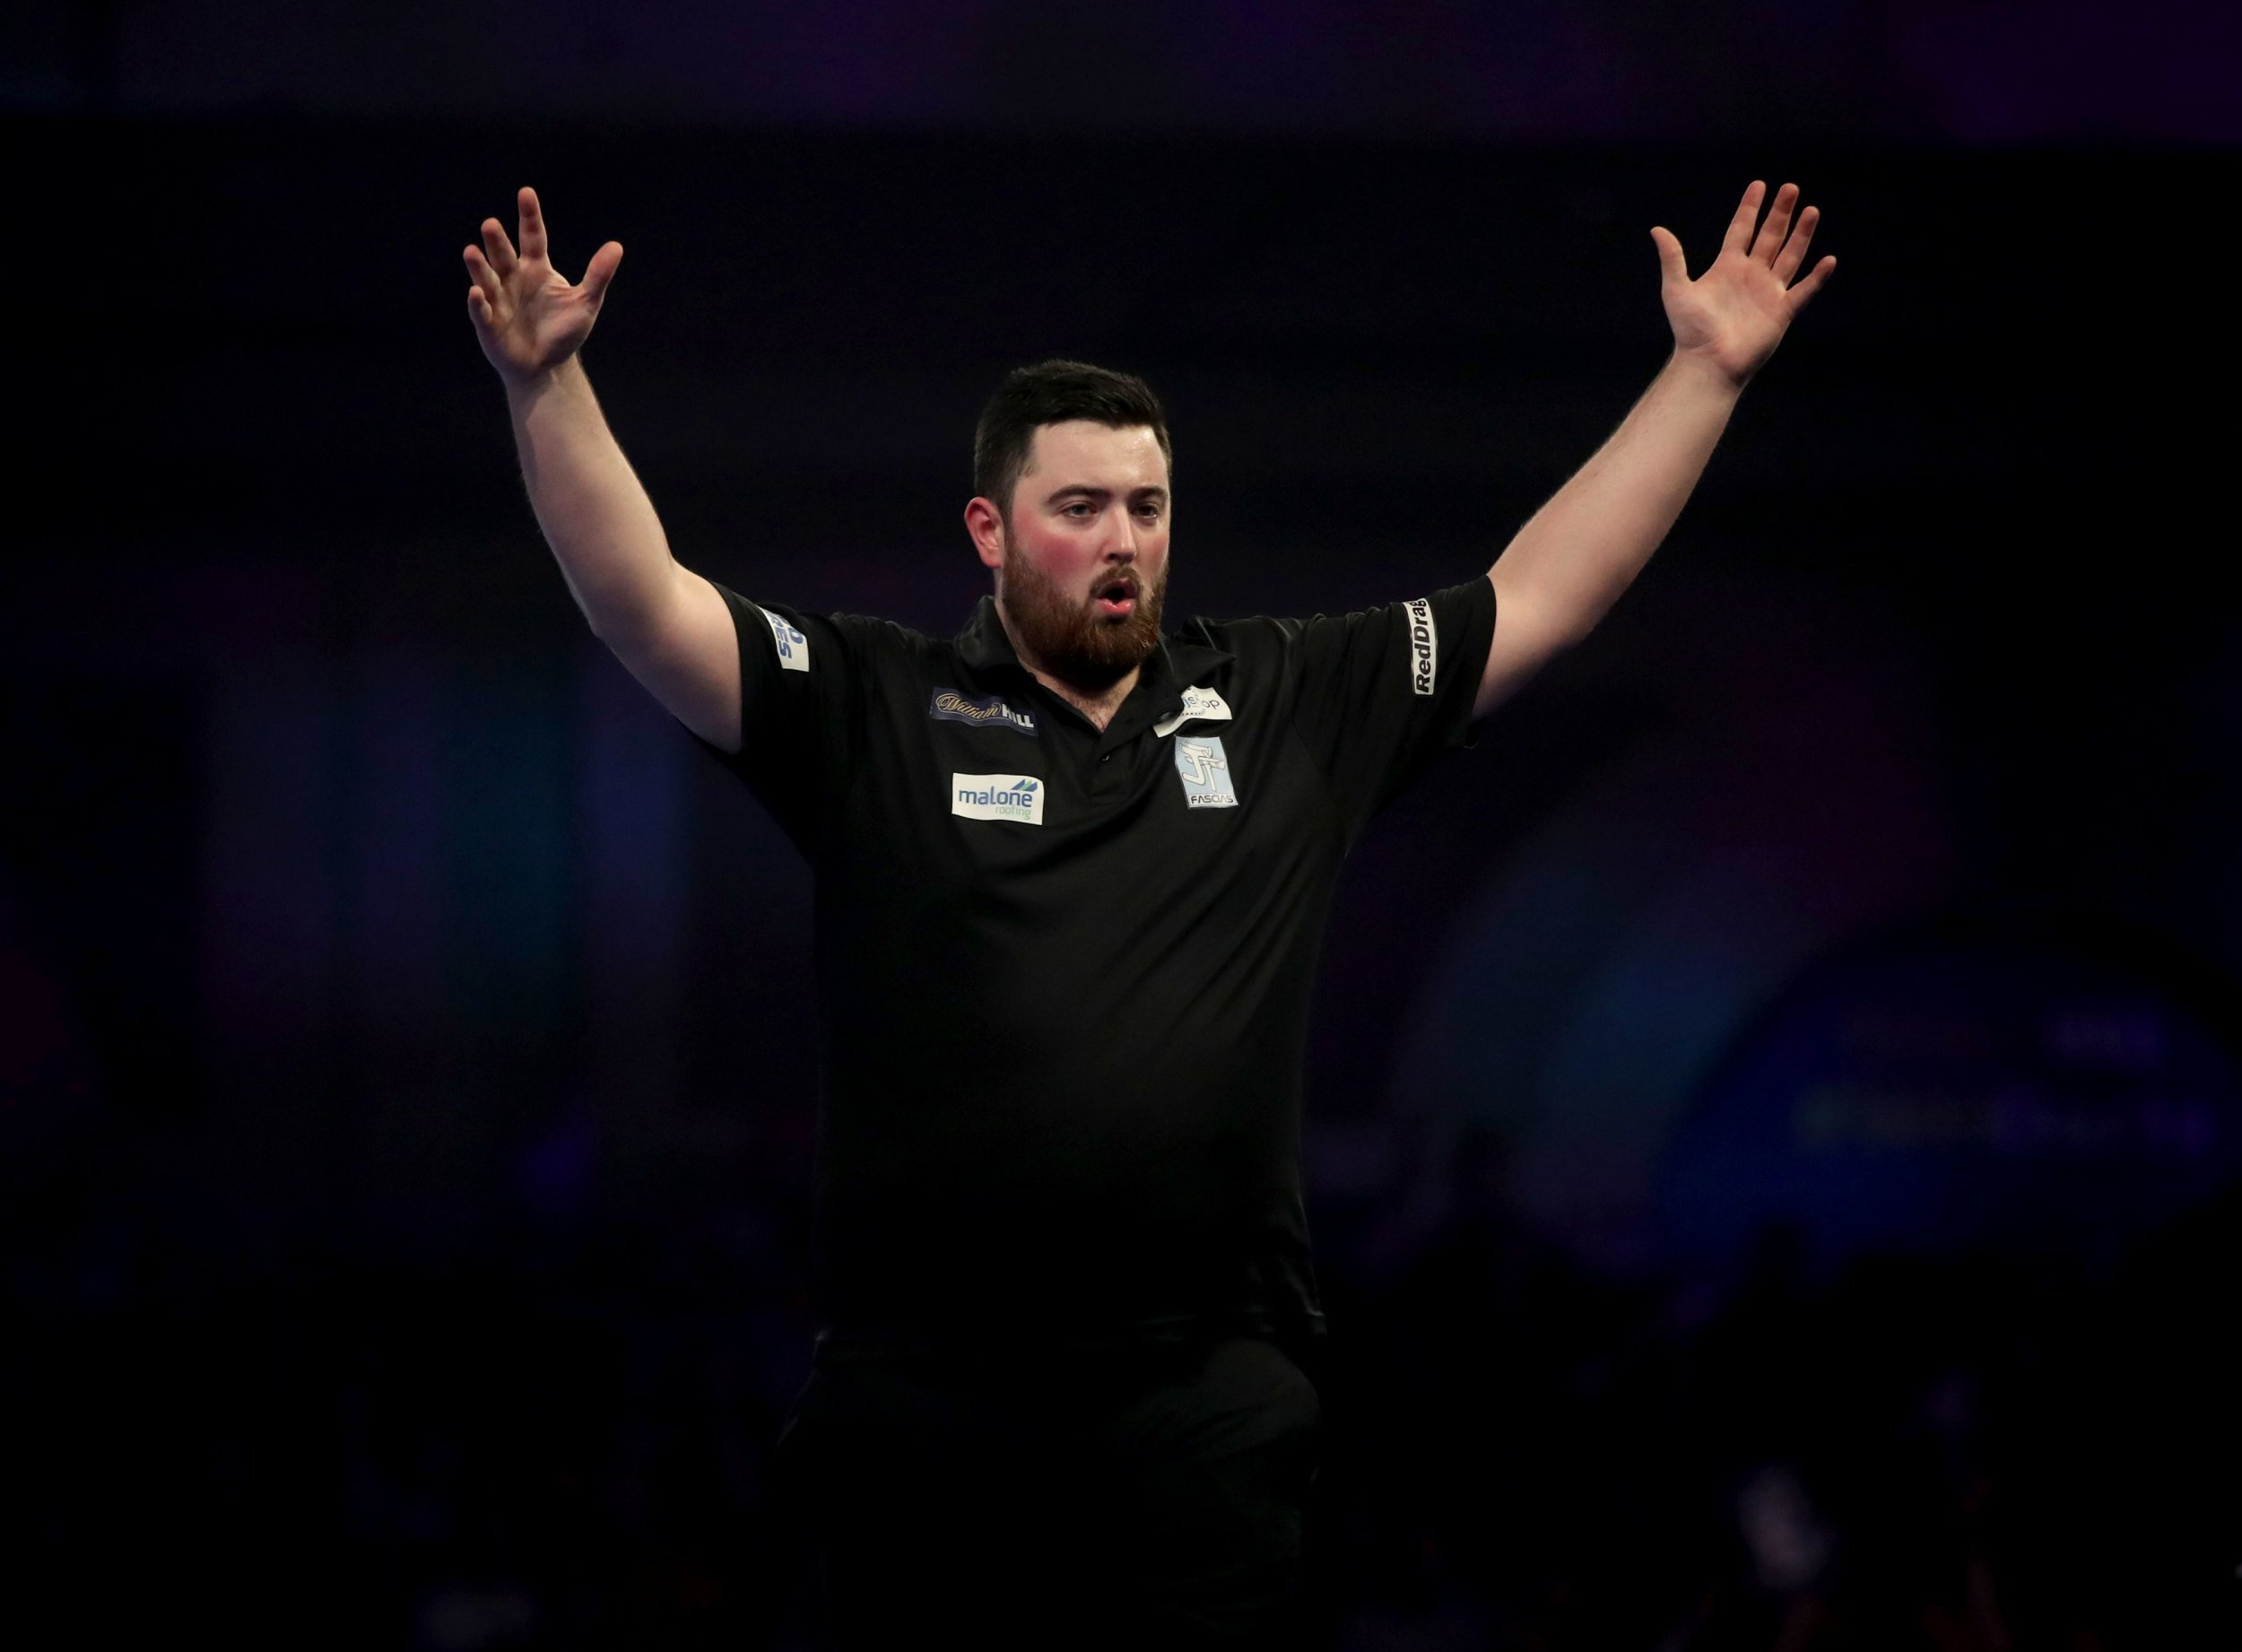 Premier League Darts Week Four fixtures, odds, table, schedule and latest contender Luke Humphries